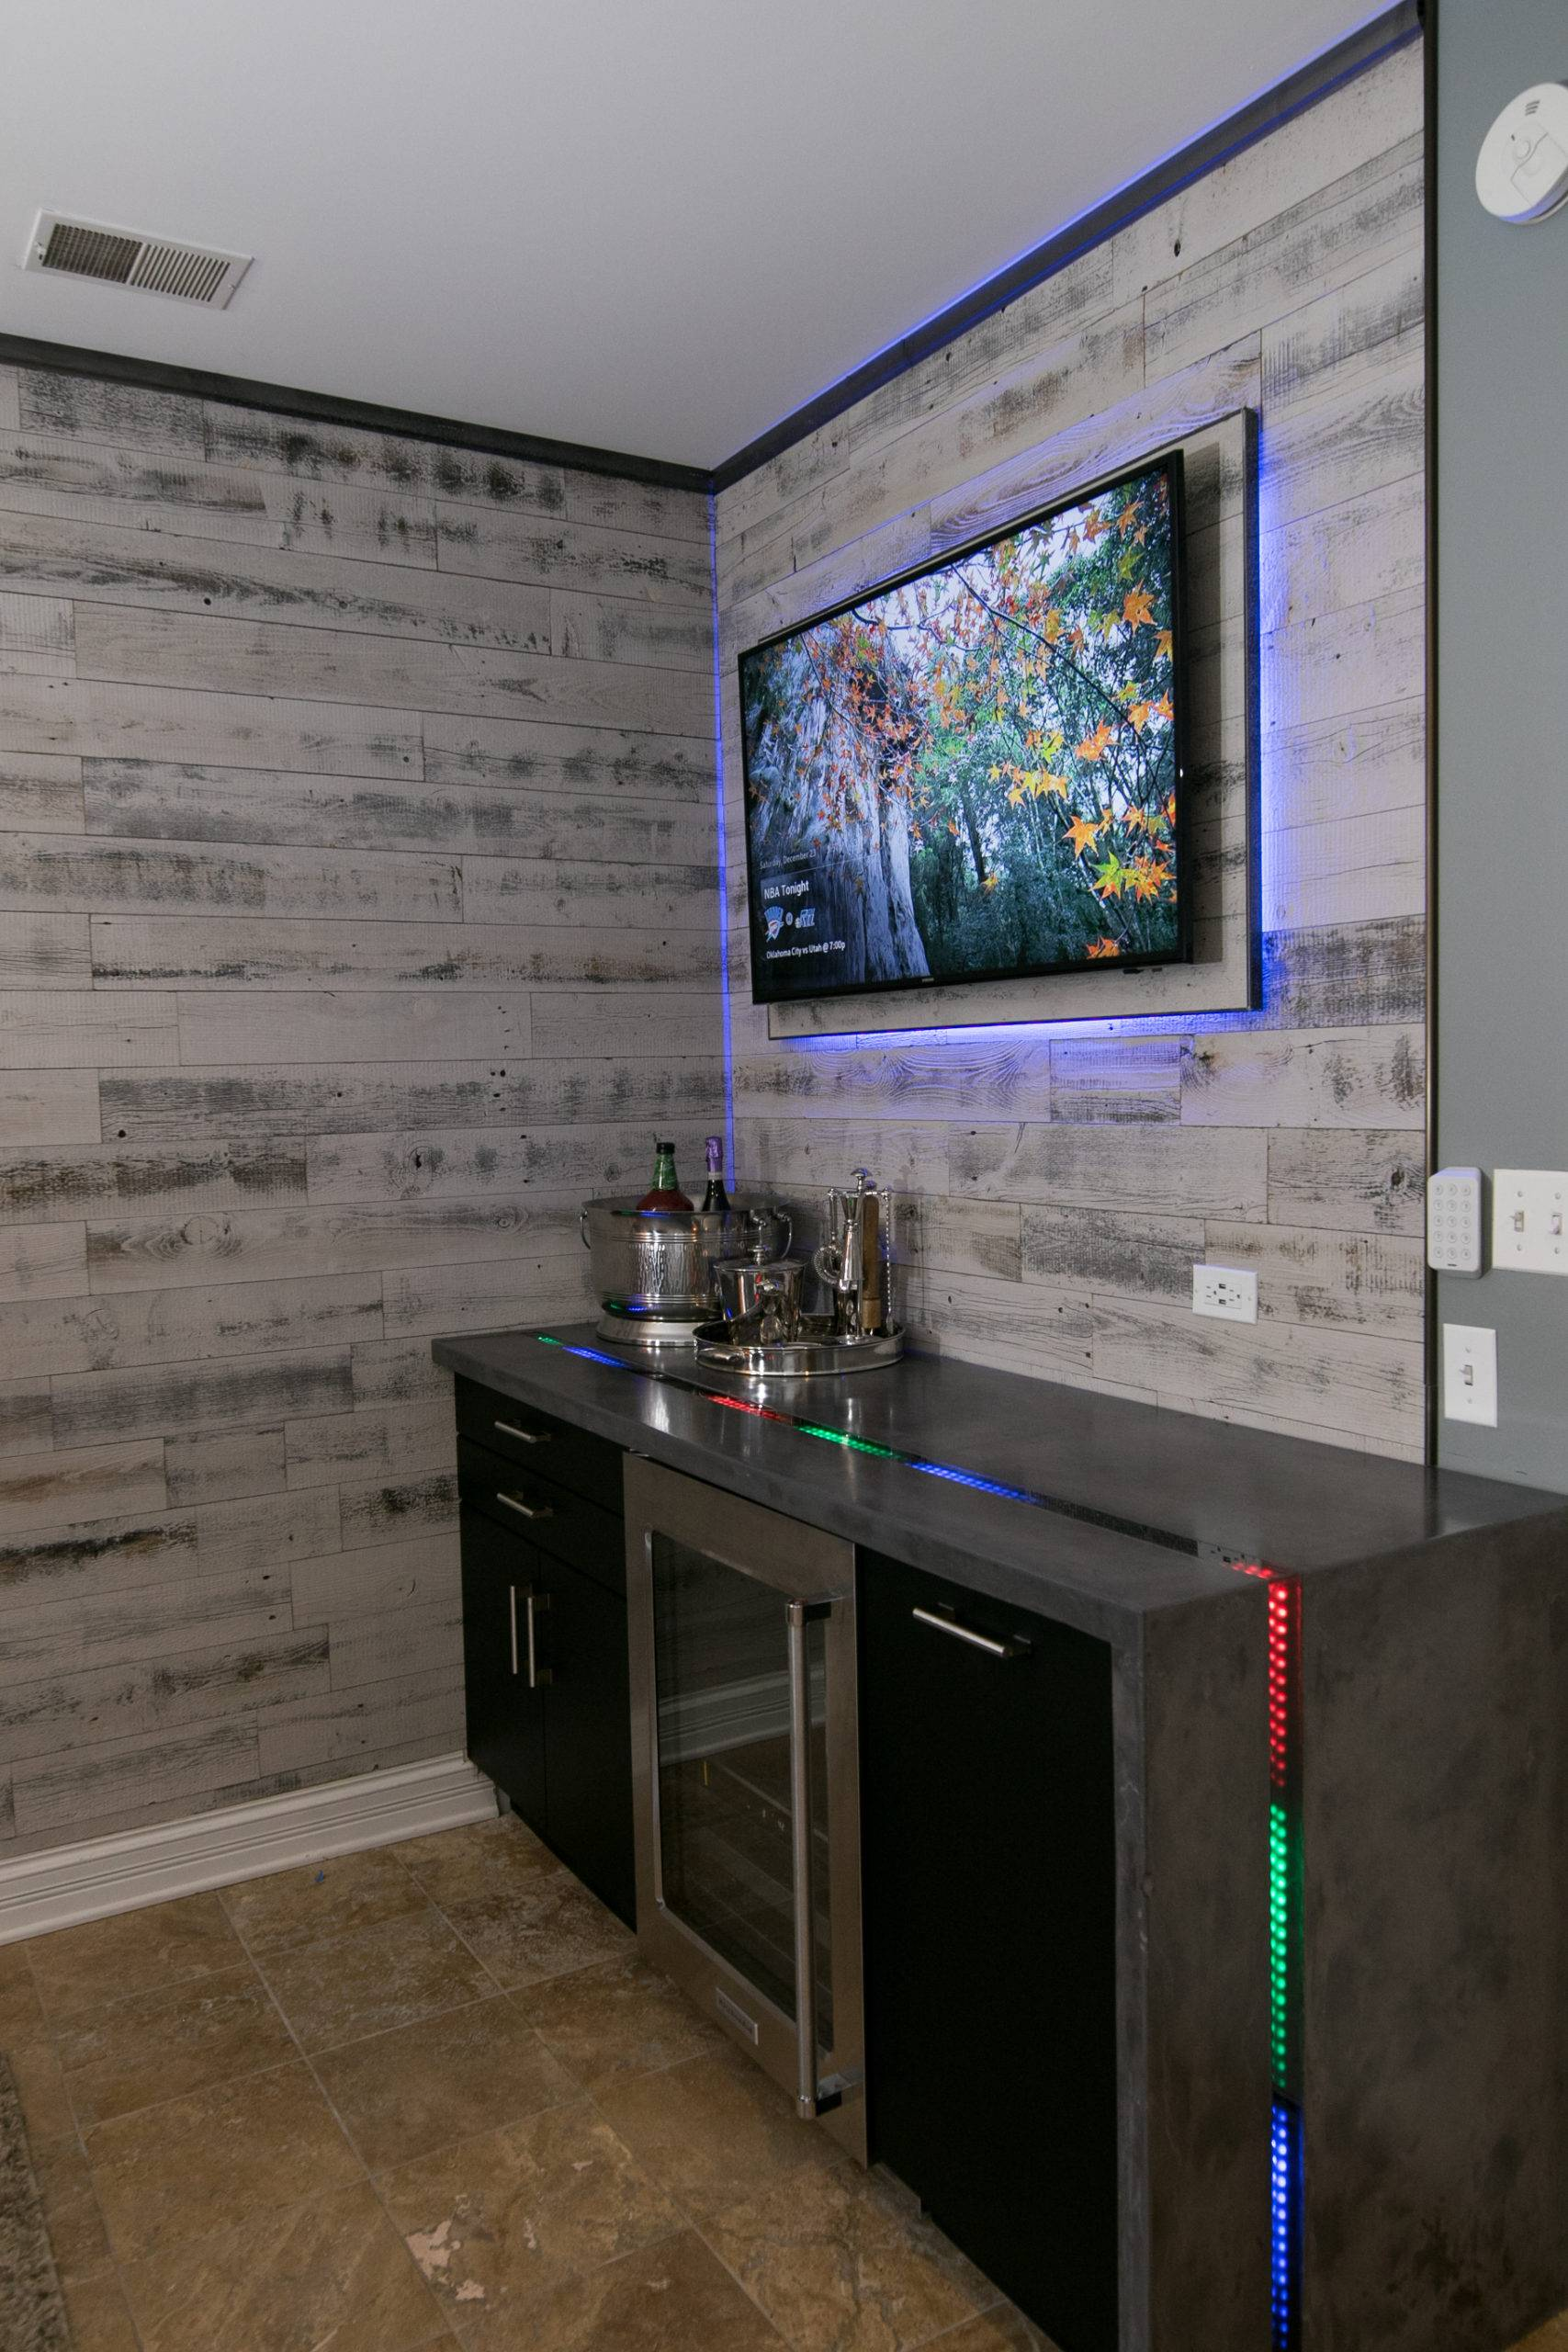 Large screen on wall and counter top with lights